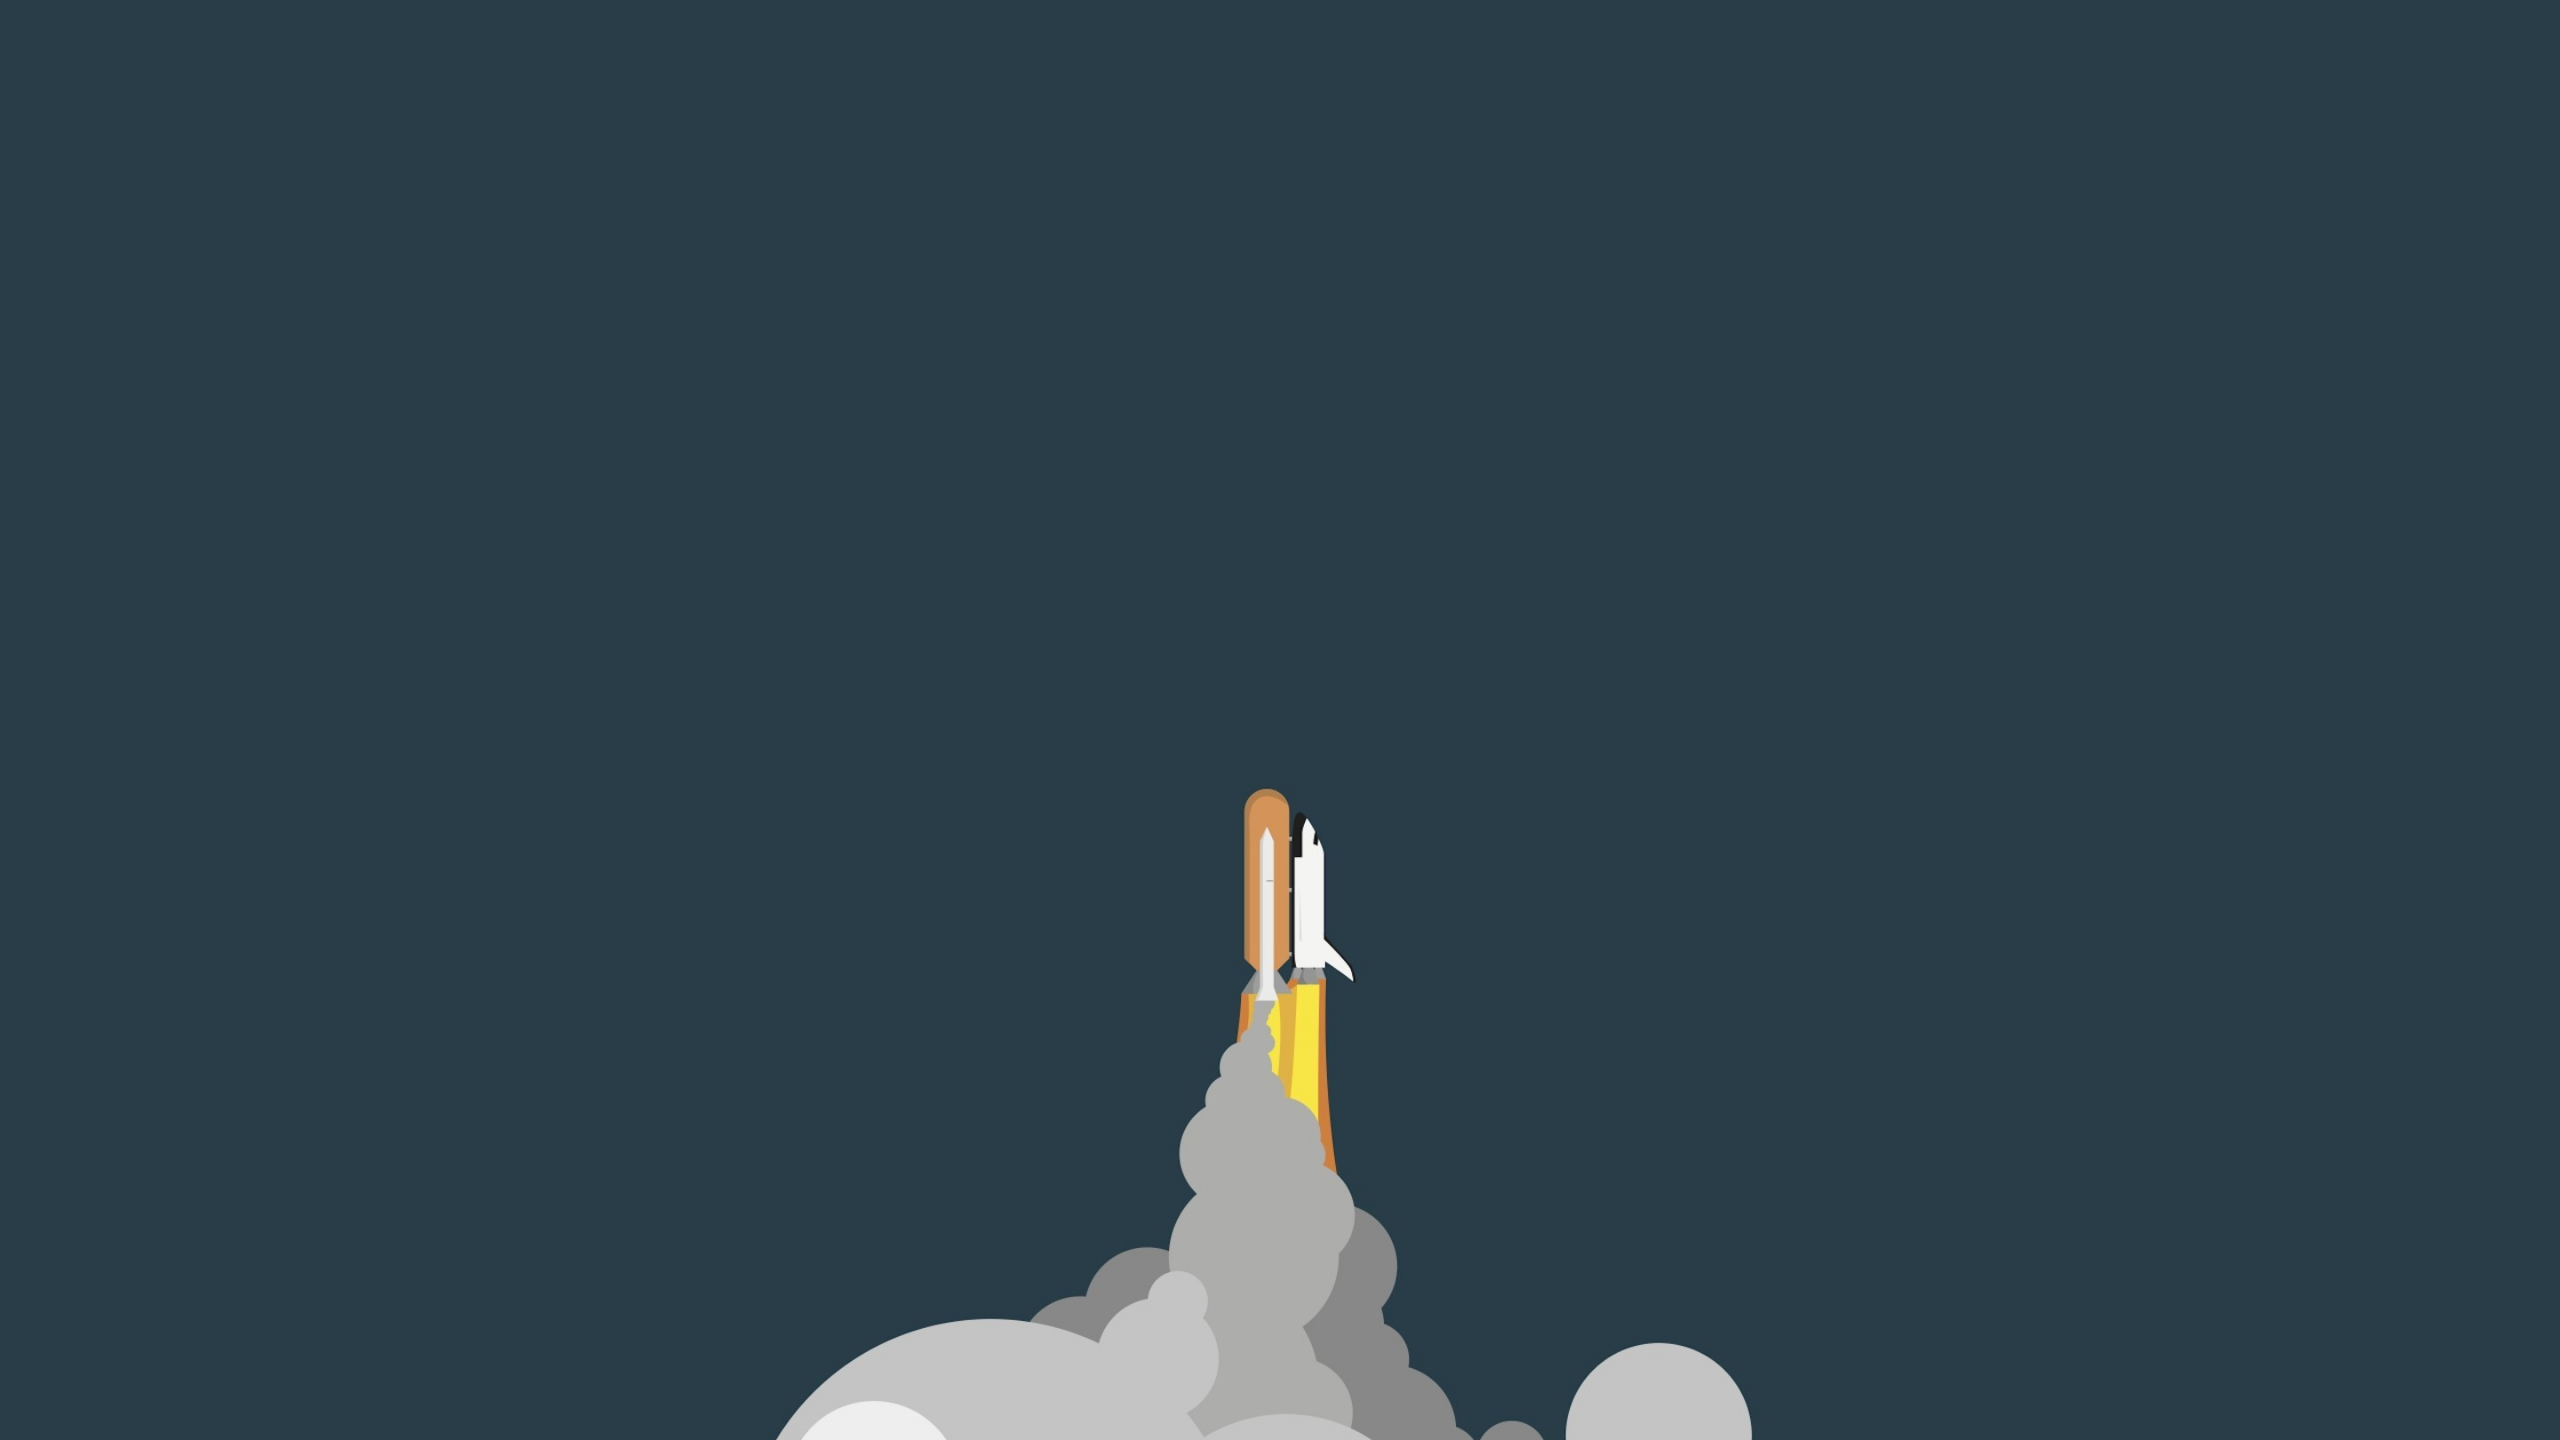 Download 2560x1440 Wallpaper Minimalist Space Rocket Clouds Dual Wide Widescreen 16 9 Widescreen 2560x1440 Hd Image Background 5886